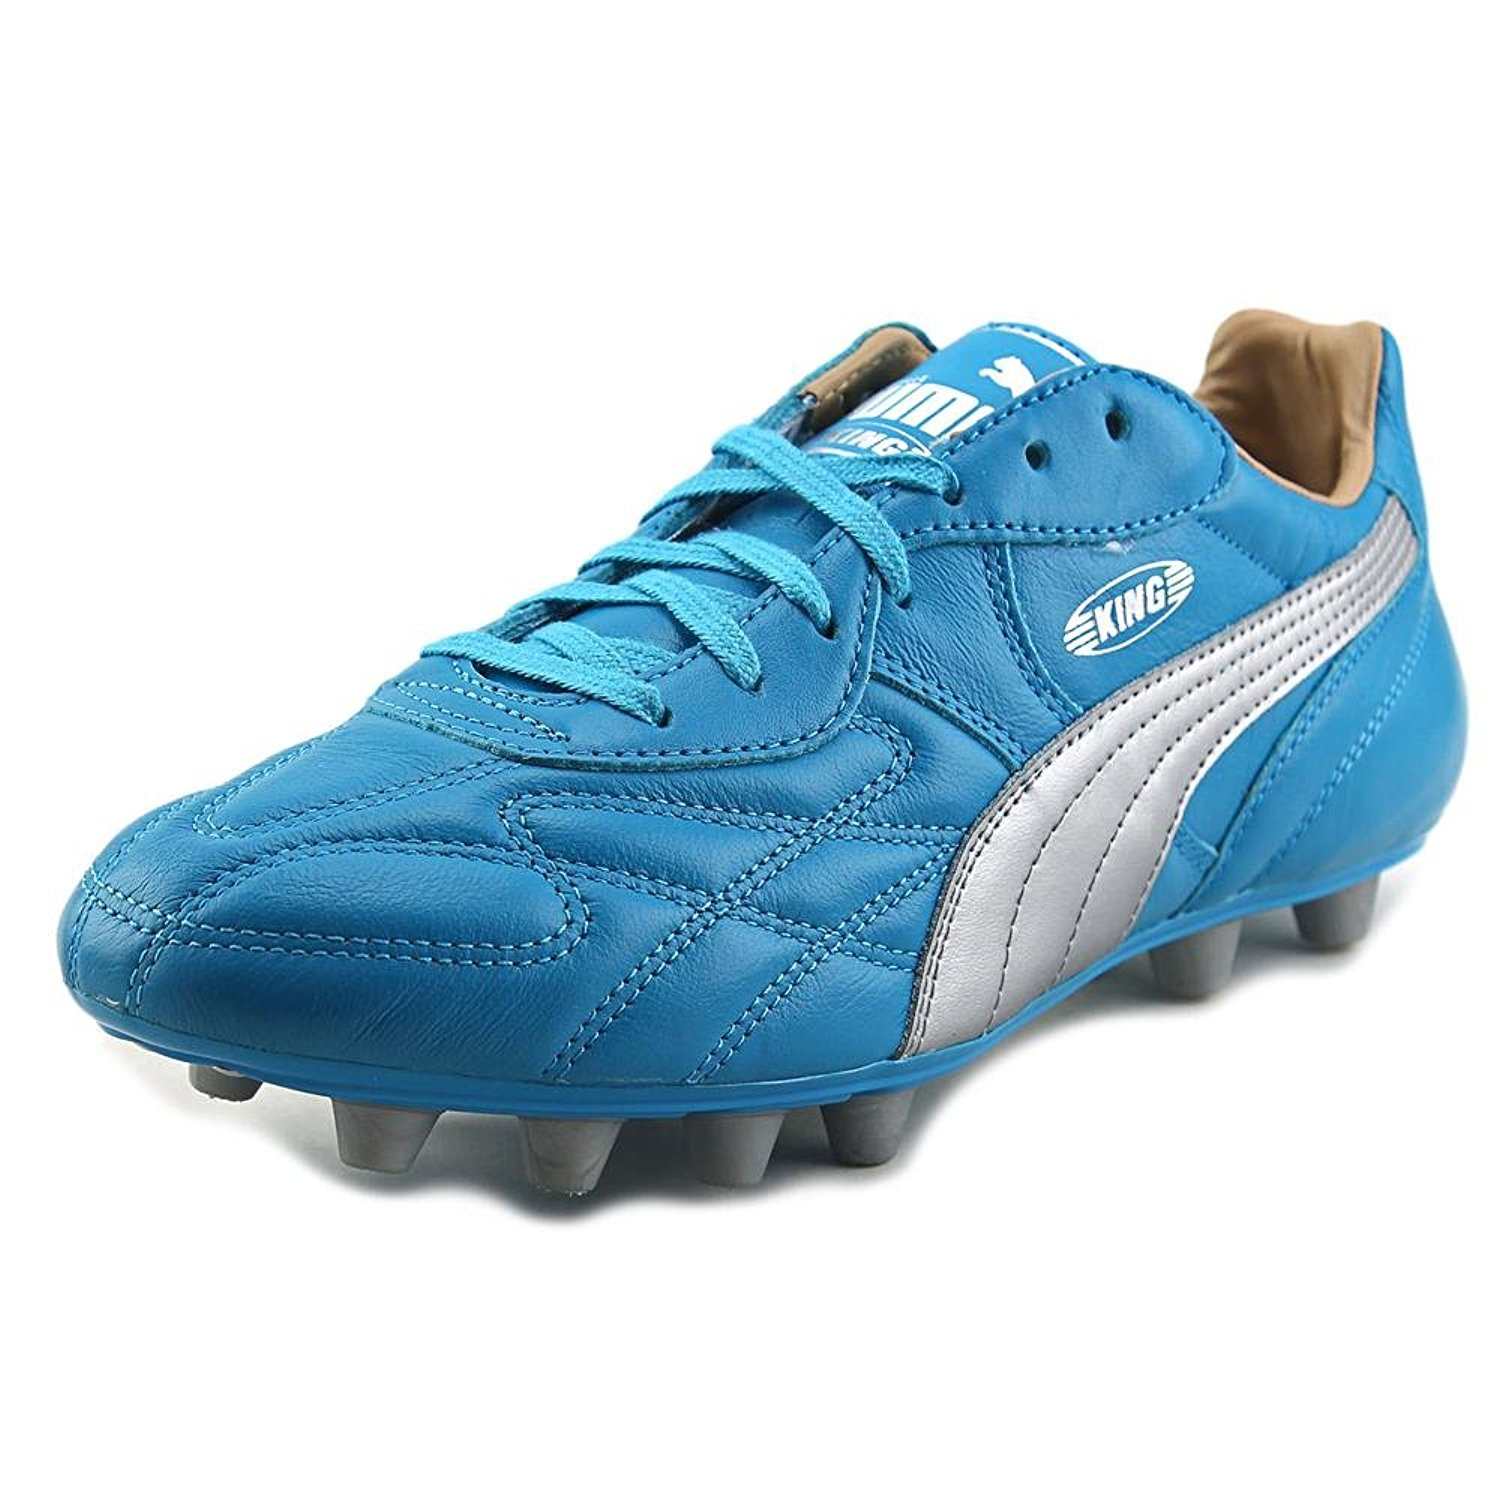 2a44c3cf695 Buy Puma KING TOP CITY DI Firm Ground Cleats in Cheap Price on ...